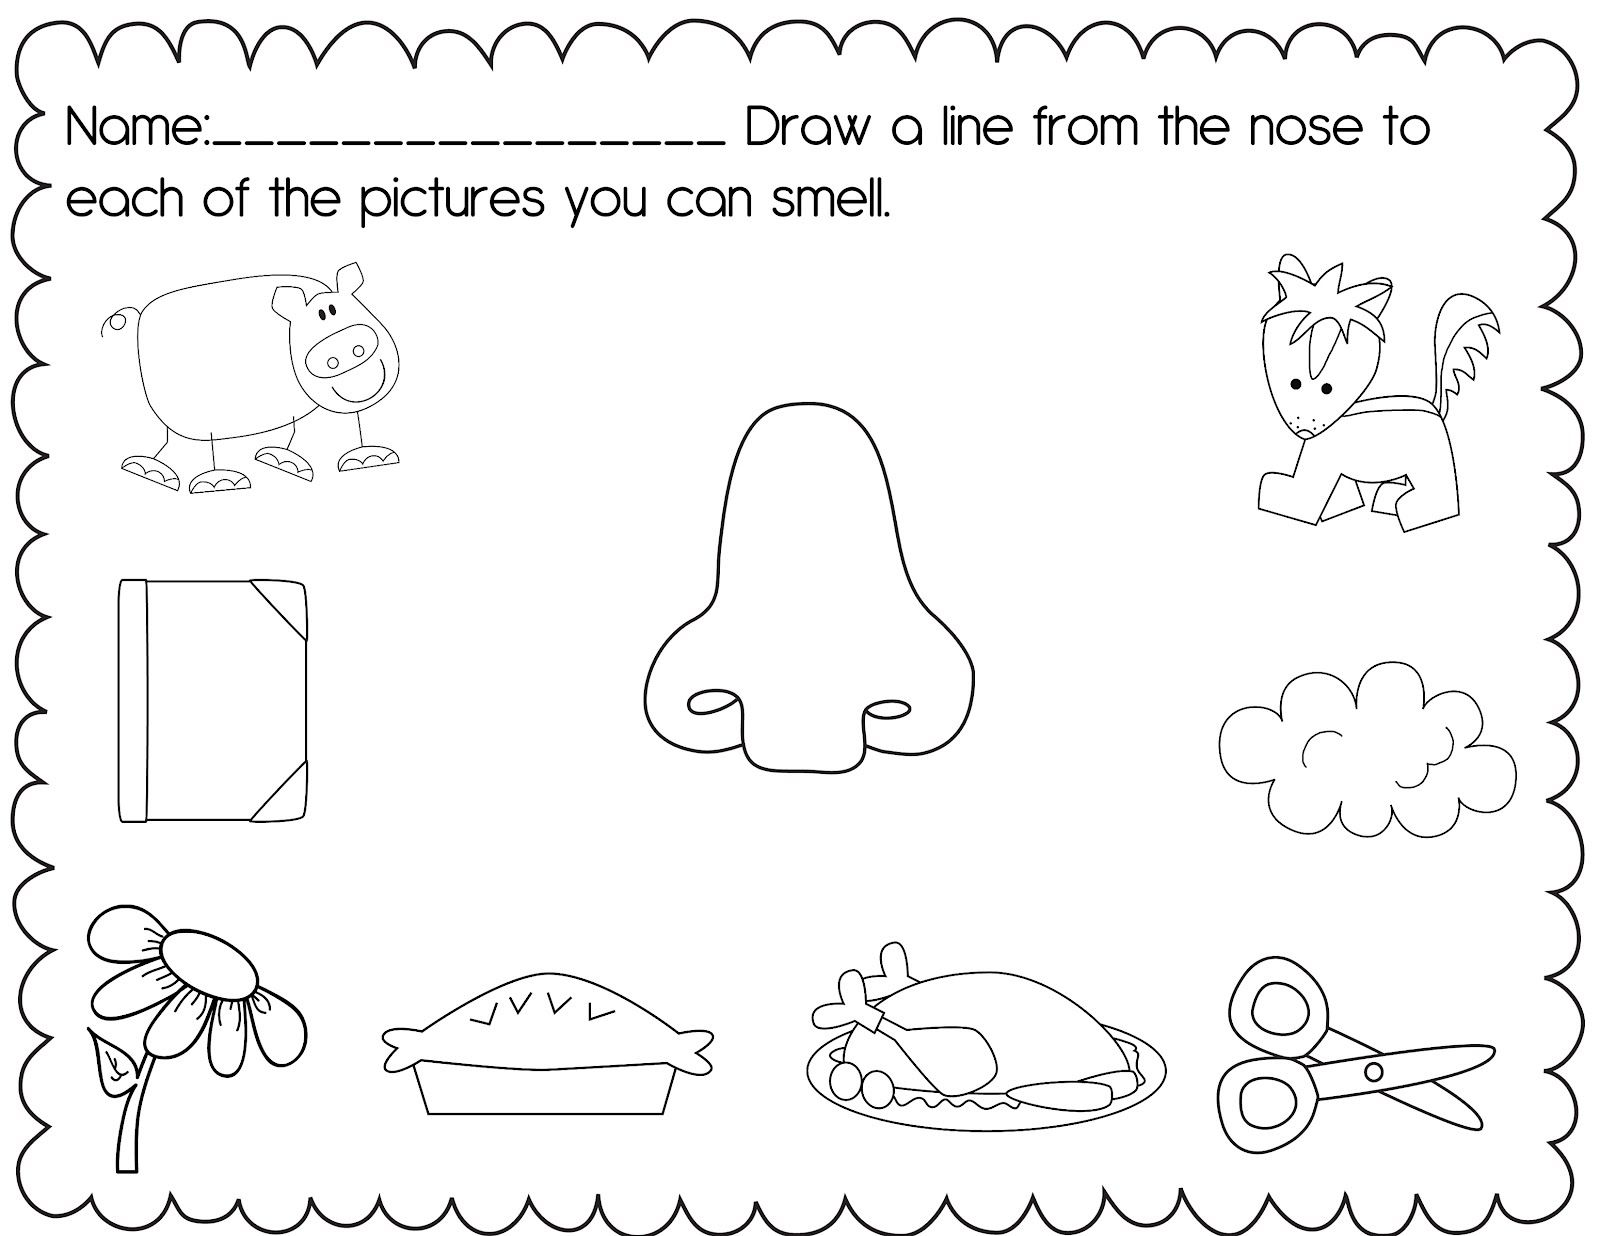 5 Senses Worksheets For Kindergarten – 5 Senses Worksheets Kindergarten